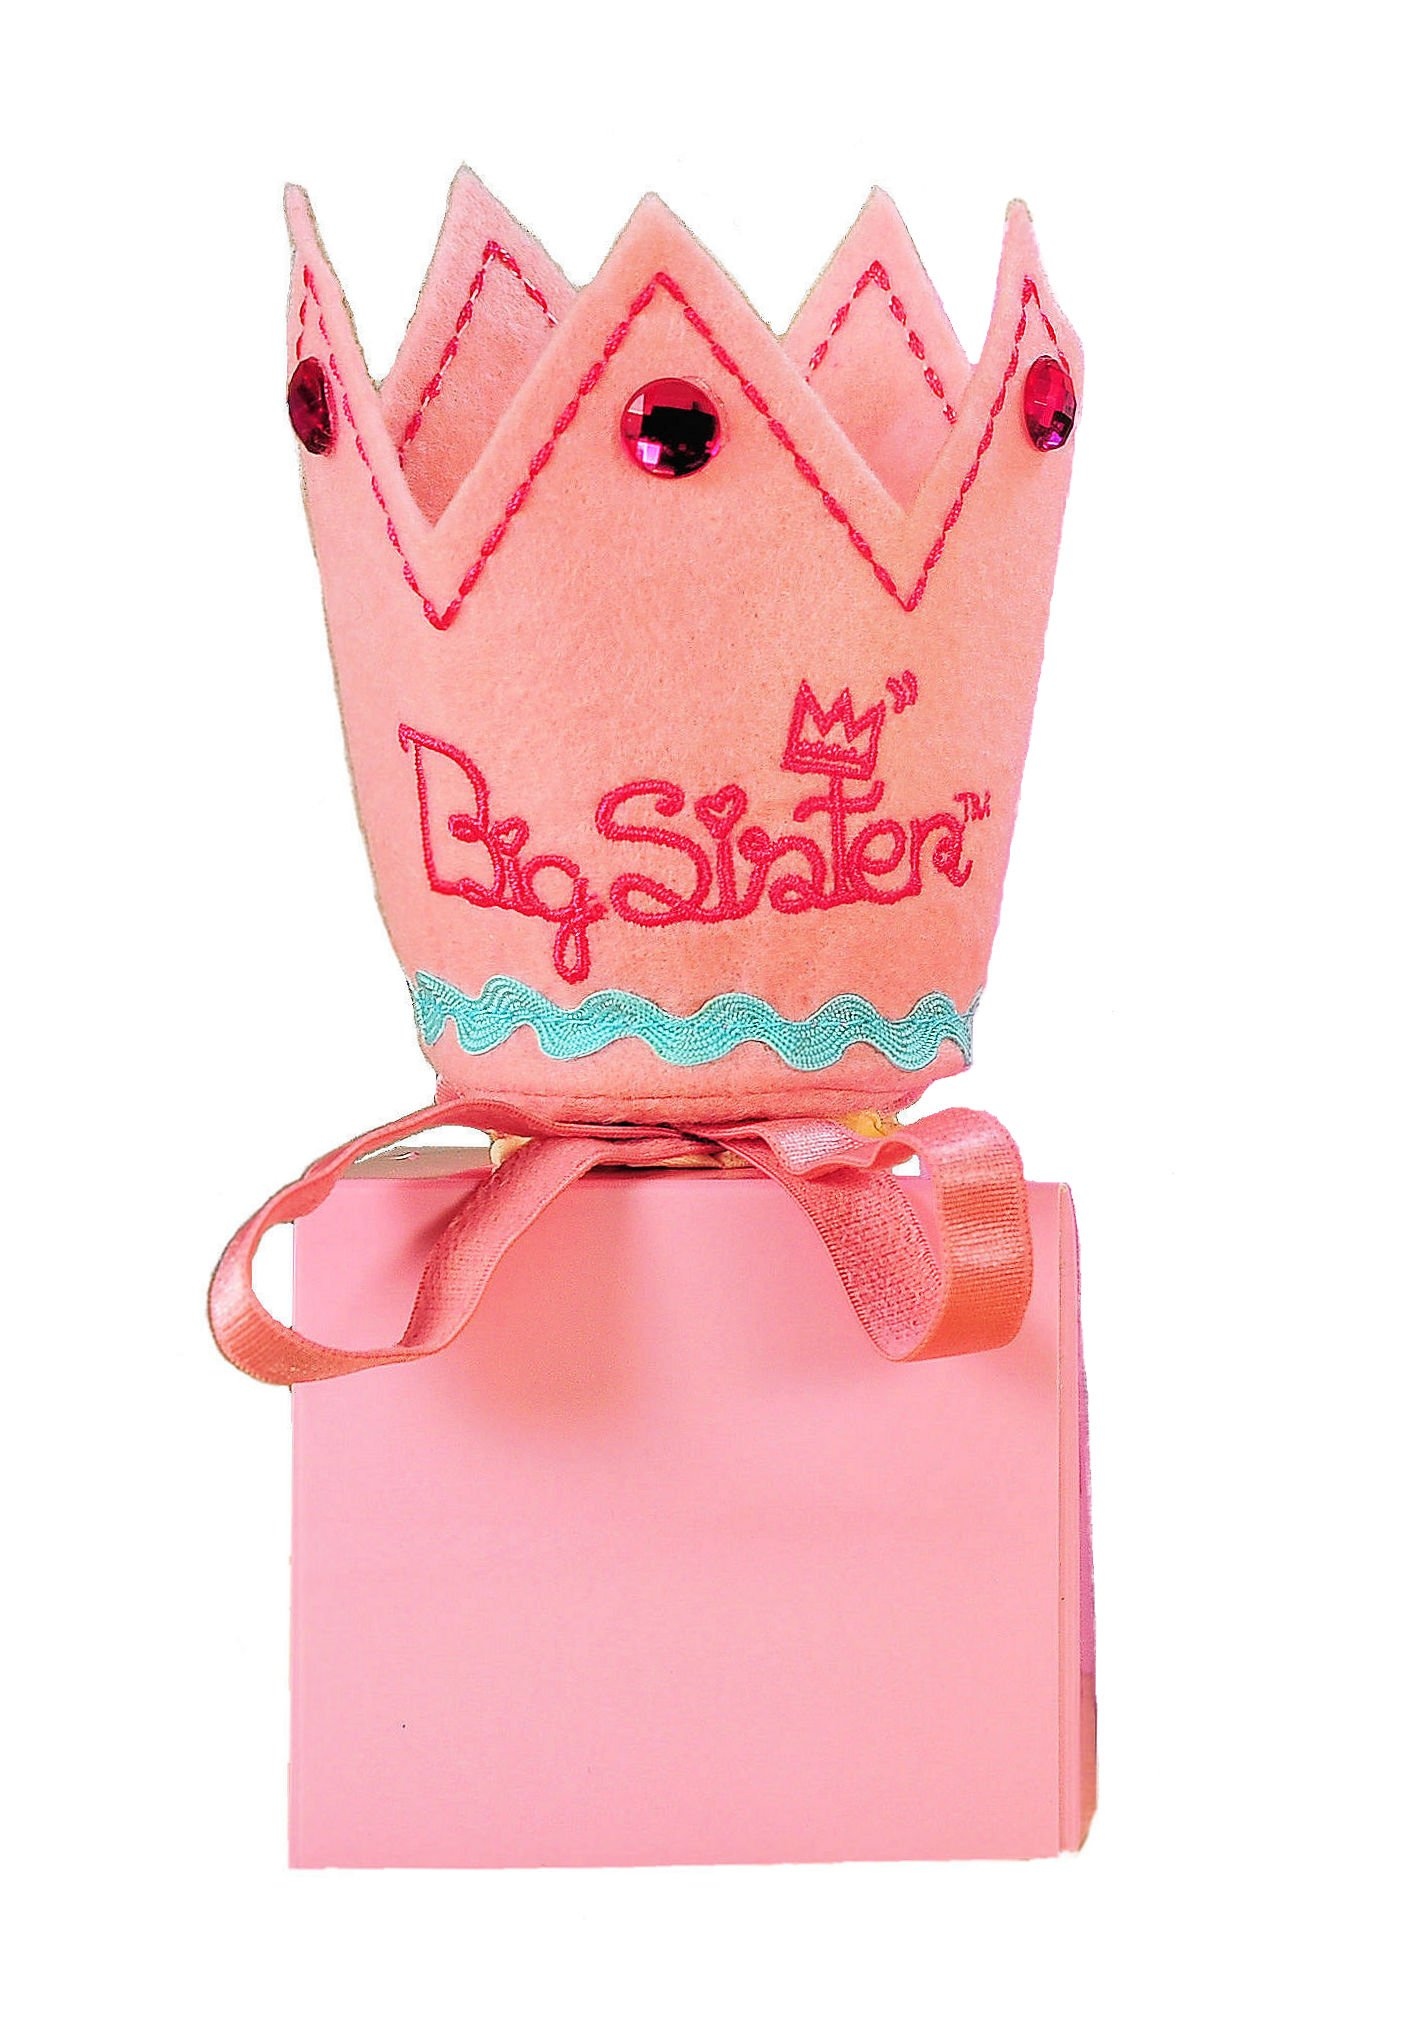 Tickle & Main Big Sister Gift Set- I Hereby Crown You Big Sister Book, Doll, and Child Size Crown by Tickle & Main (Image #5)